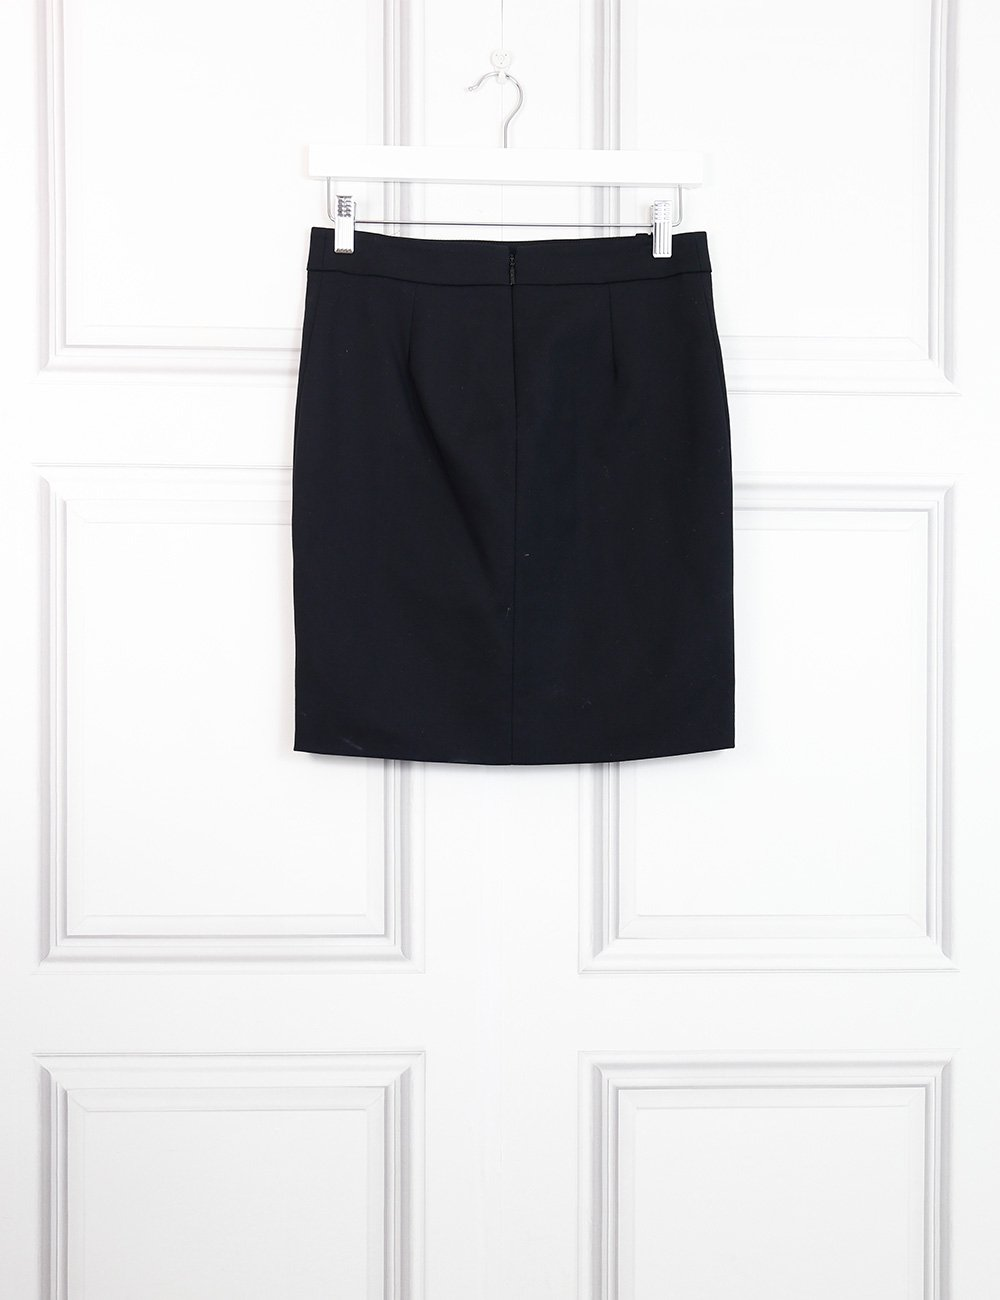 GUCCI BLACK PENCIL SKIRT WITH HORSEBIT DETAIL 6UK- My Wardrobe Mistakes